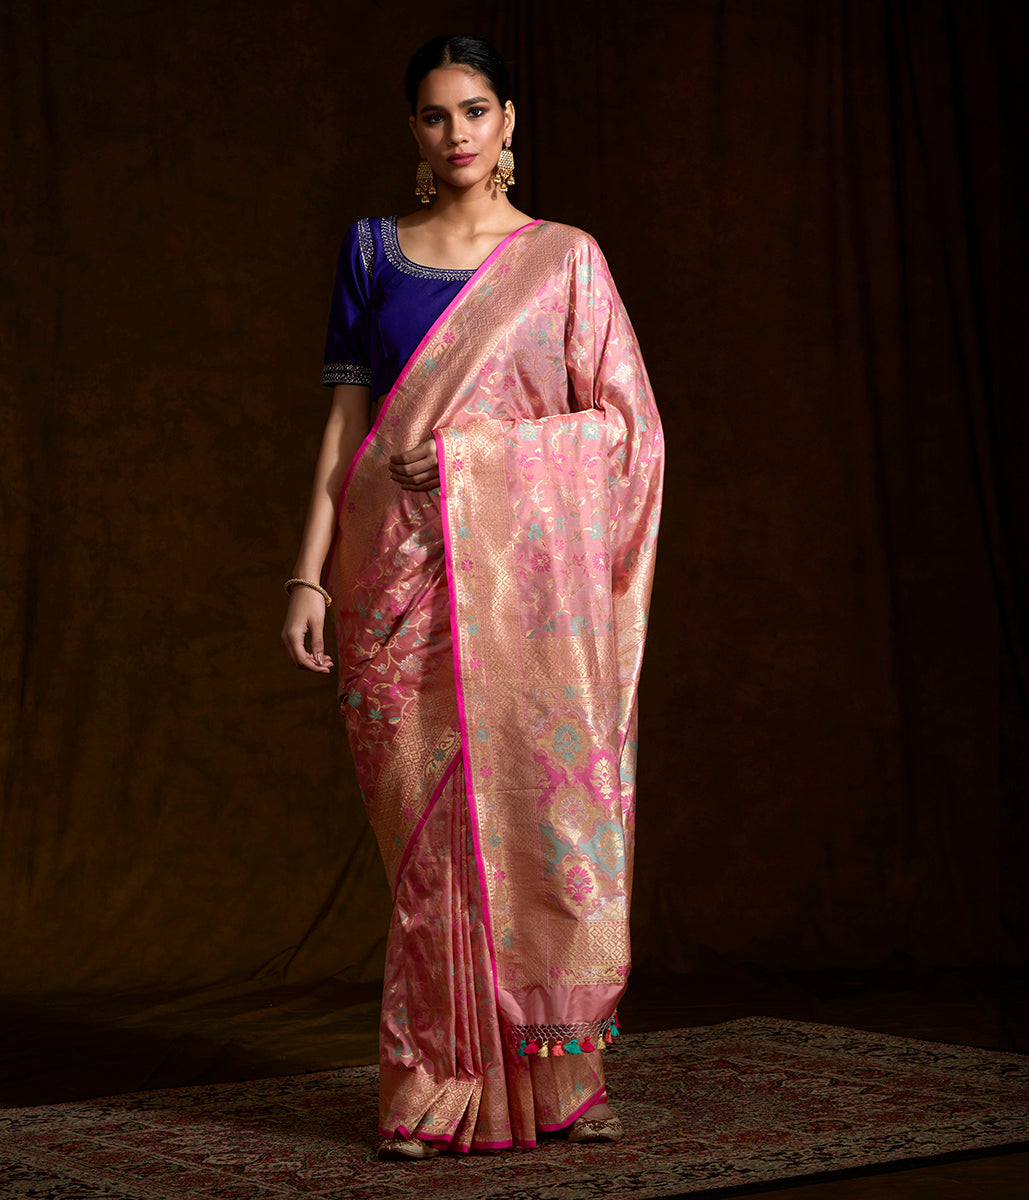 Handwoven Banarasi katan silk saree in blush pink with pastel meenakari